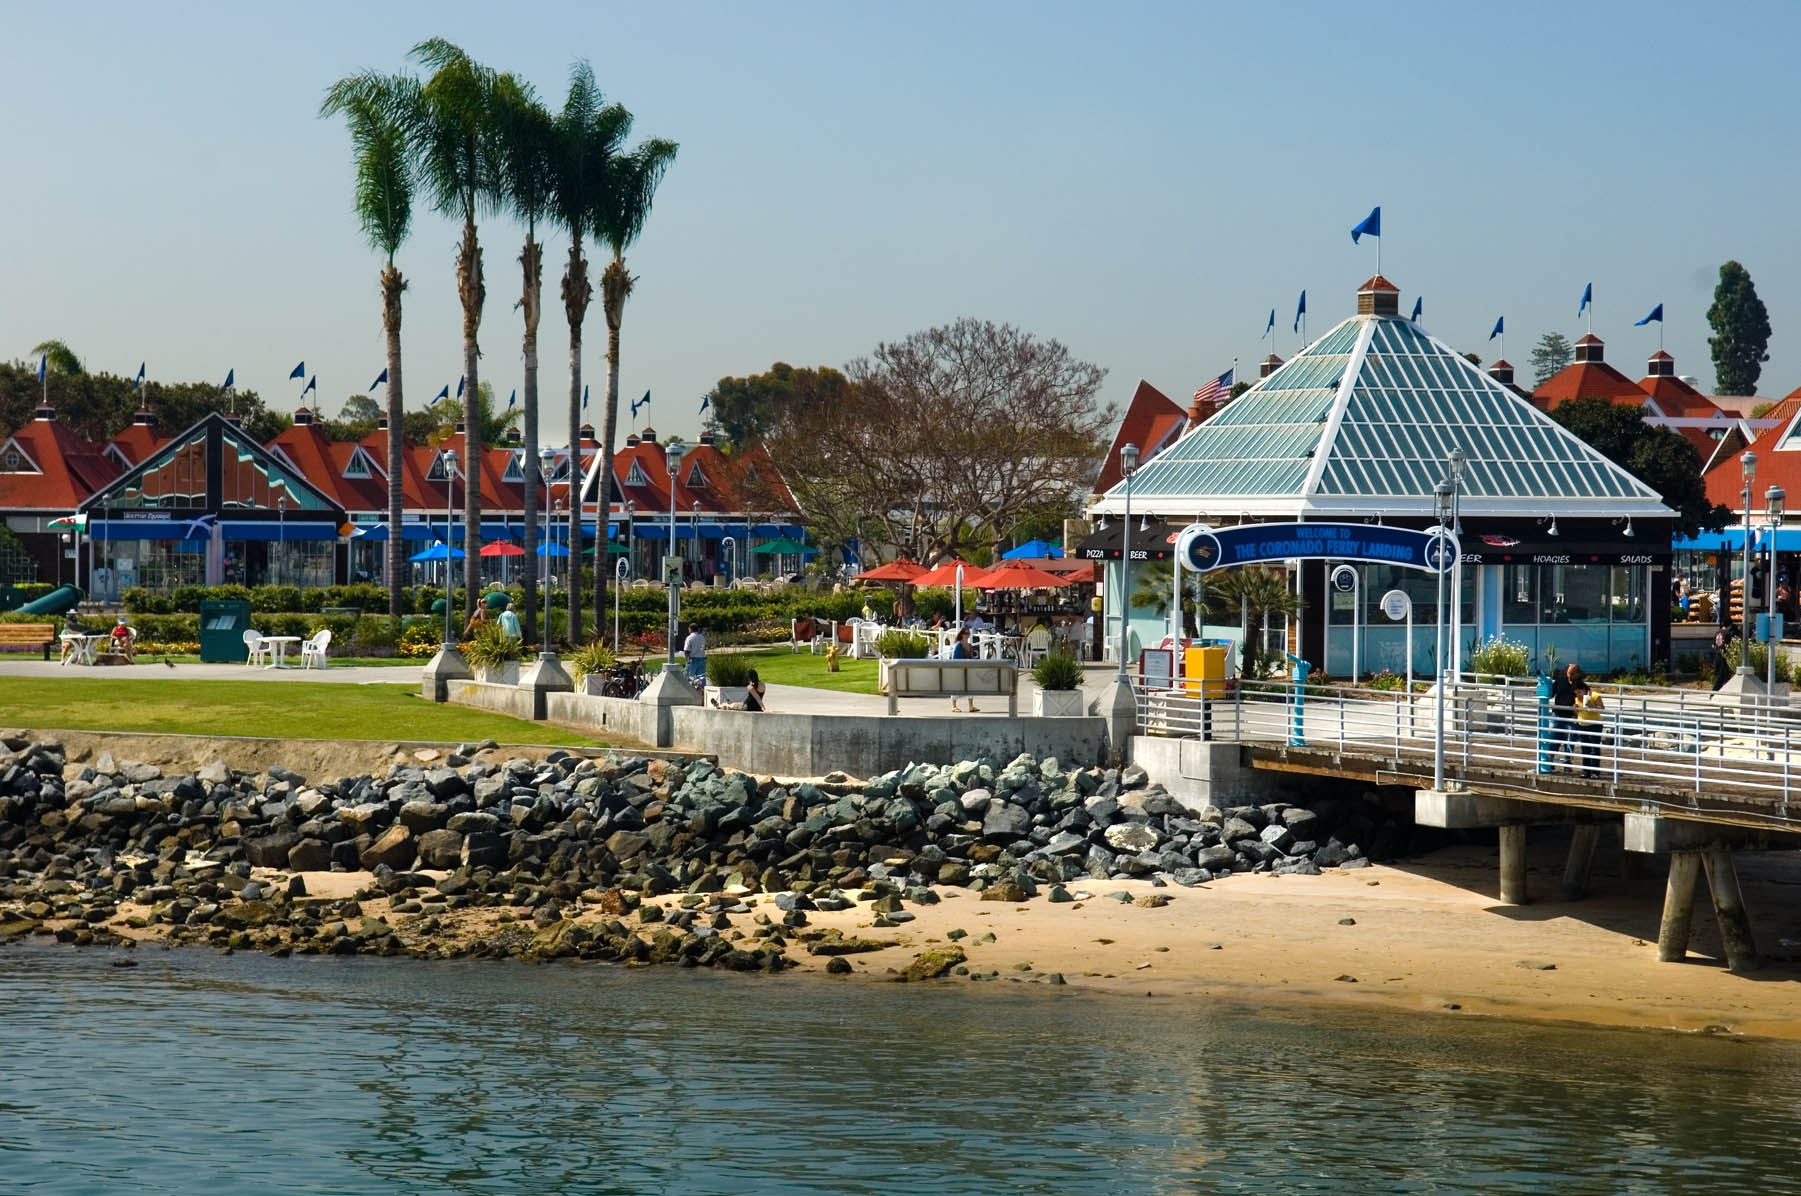 Coronado Ferry Landing Shops Bayside San Diego Travel Blog